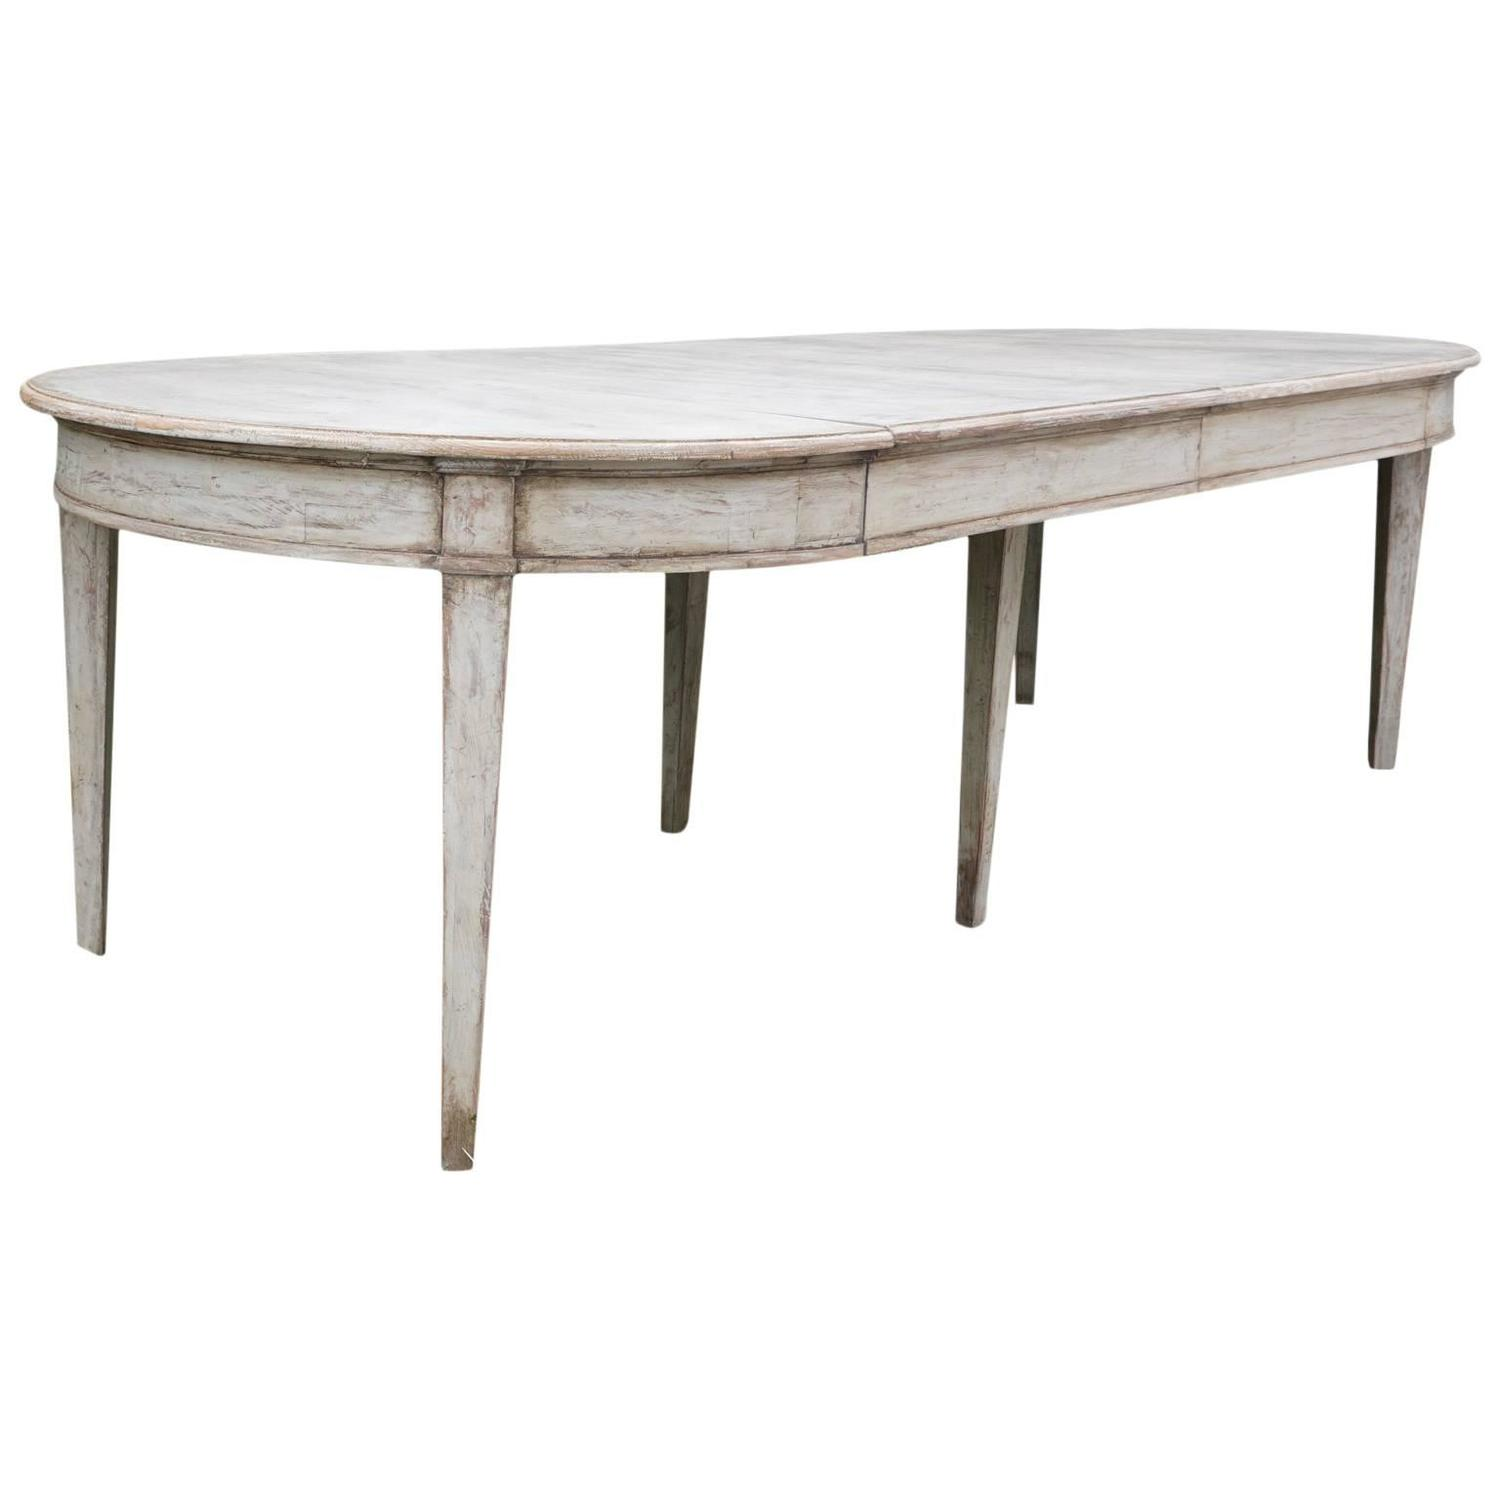 19th century gustavian dining table at 1stdibs